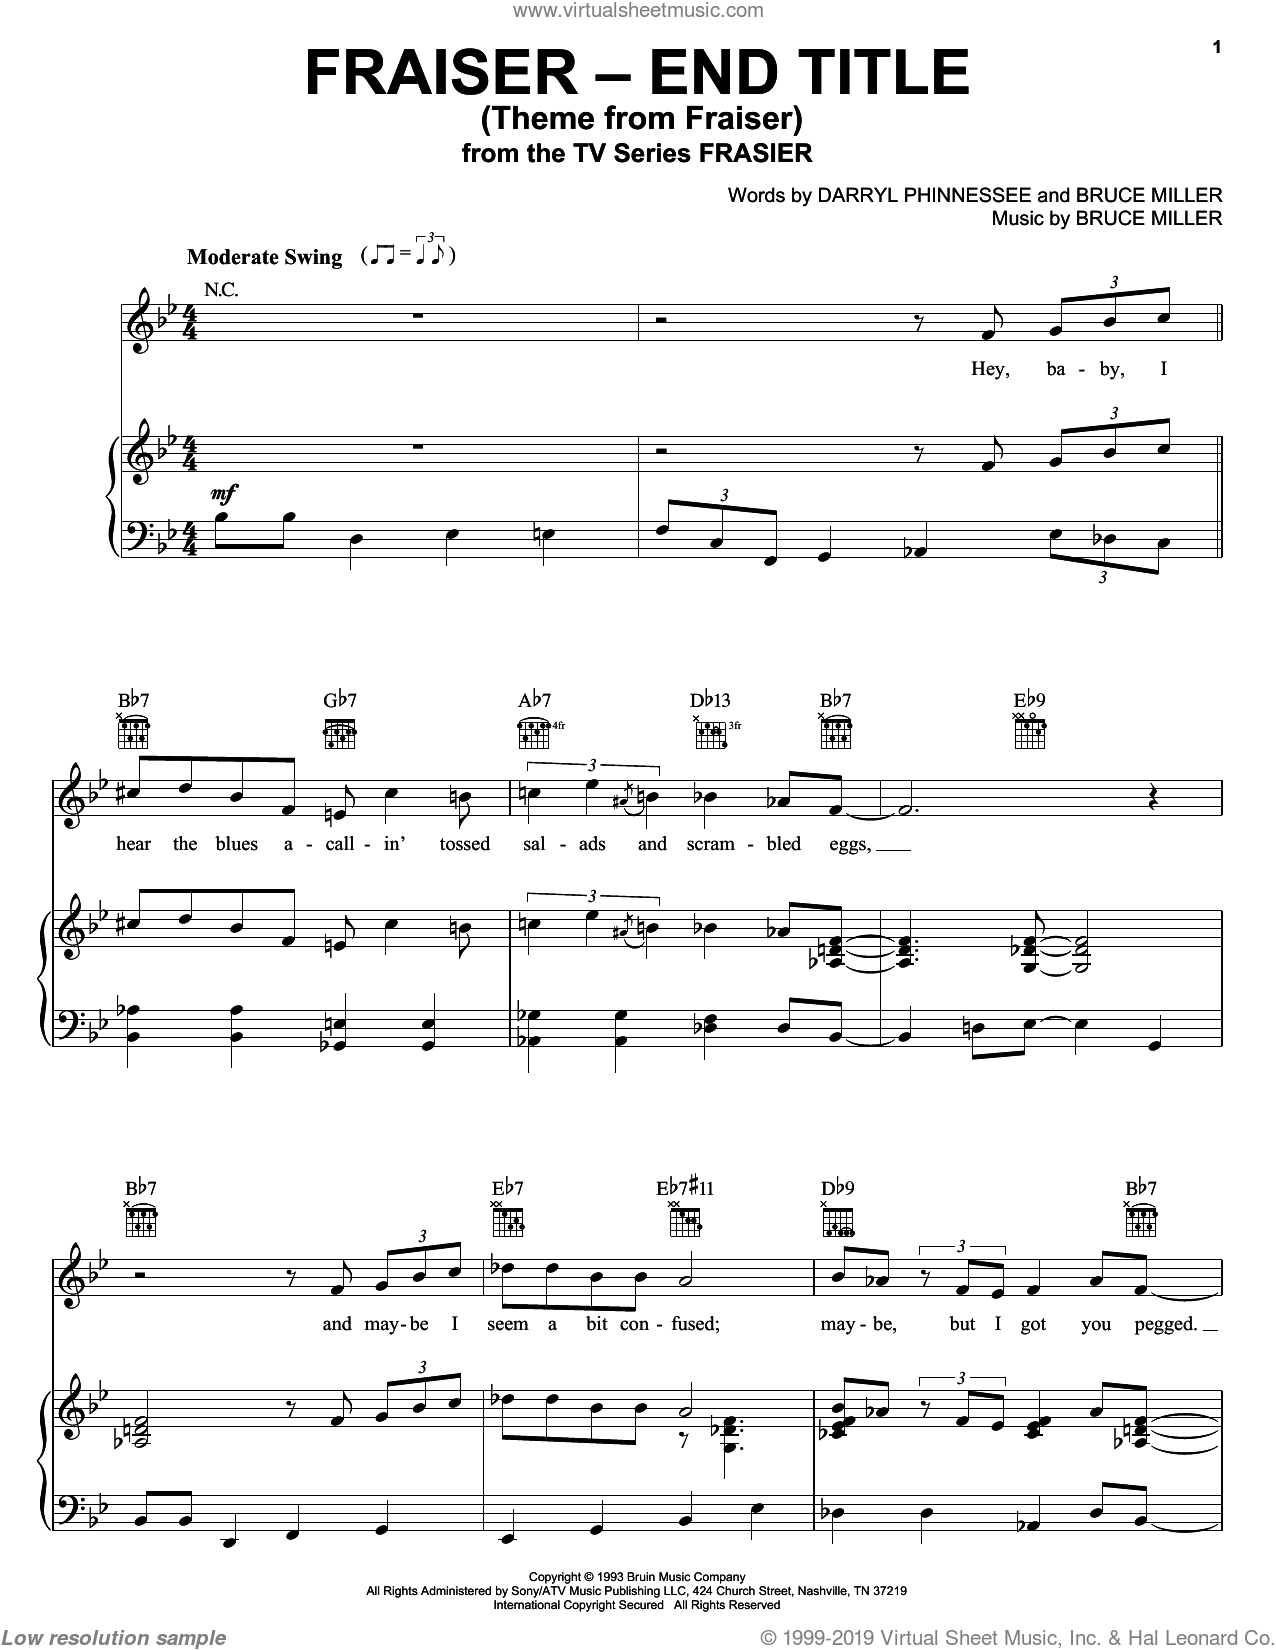 Theme From Frasier sheet music for voice, piano or guitar by Bruce Miller and Darryl Phinnessee, intermediate skill level